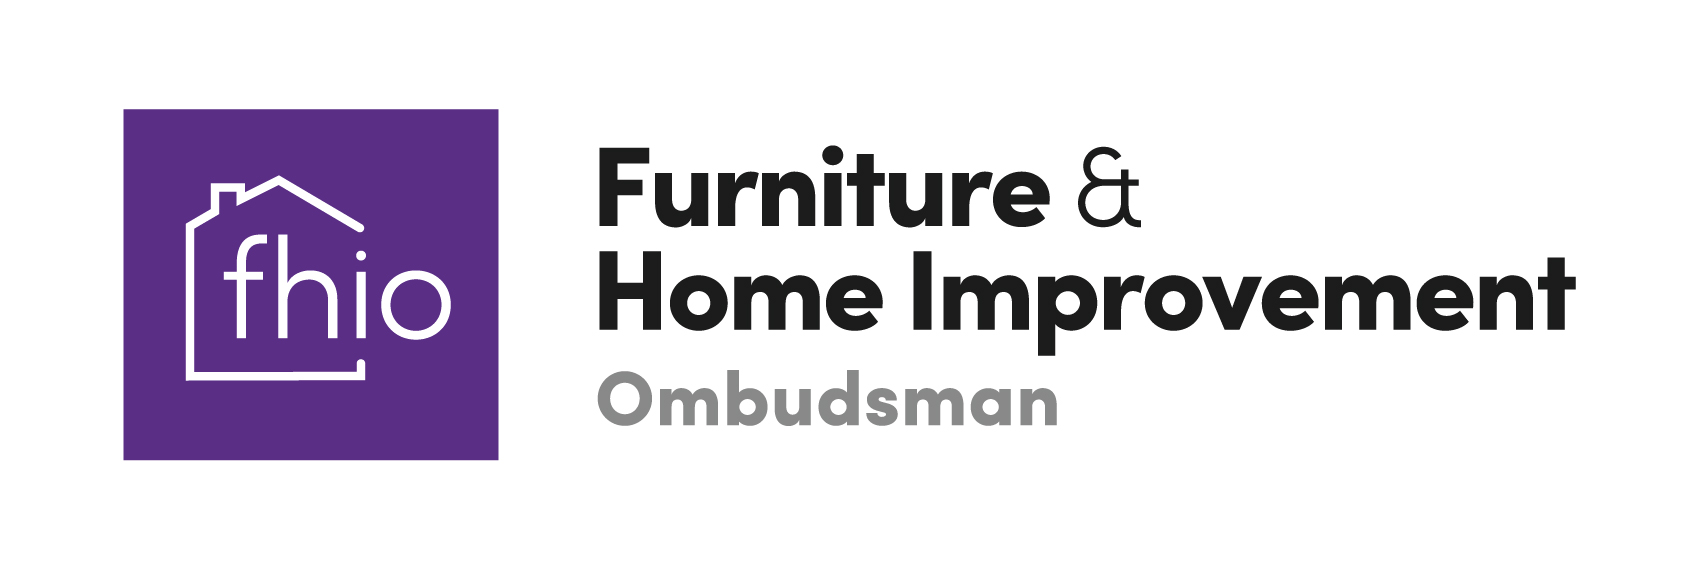 Furniture and Home Improvement Ombudsman